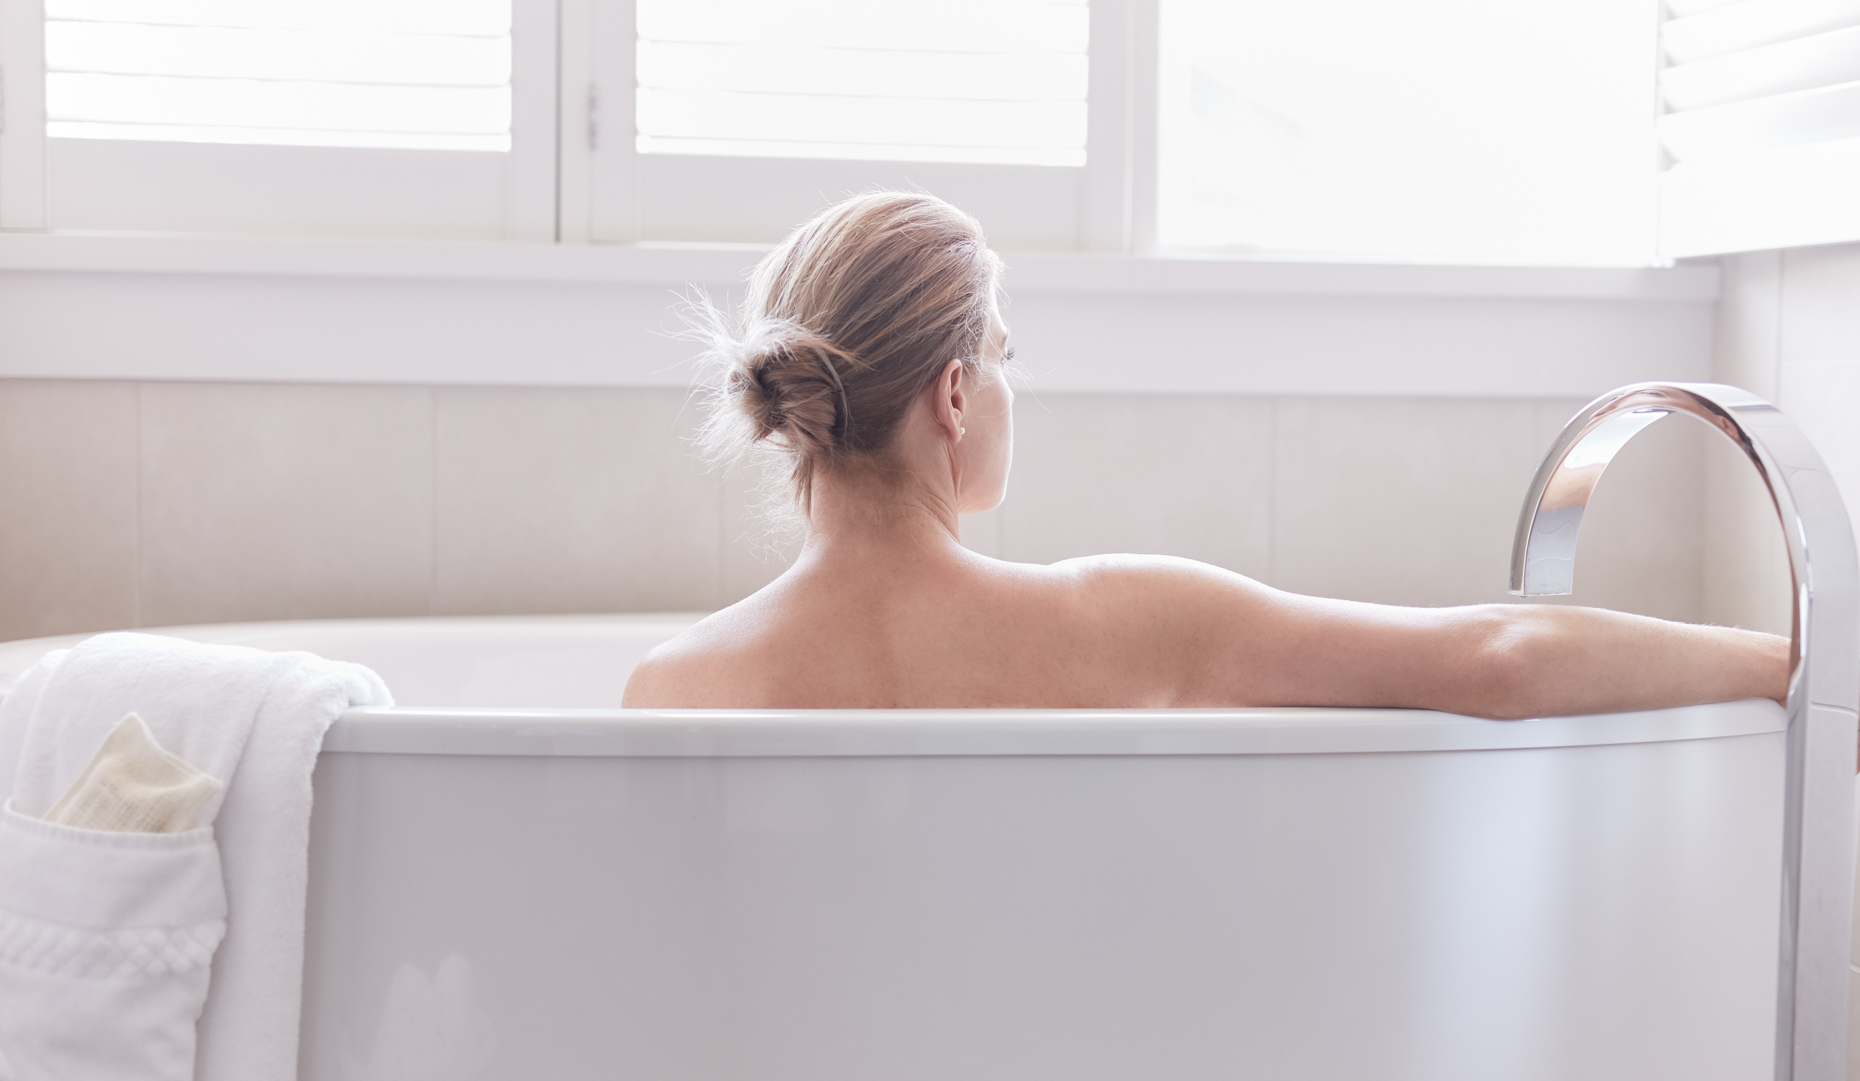 Woman from behind sitting in white bath tub with bare arm on edge of tub glancing out window